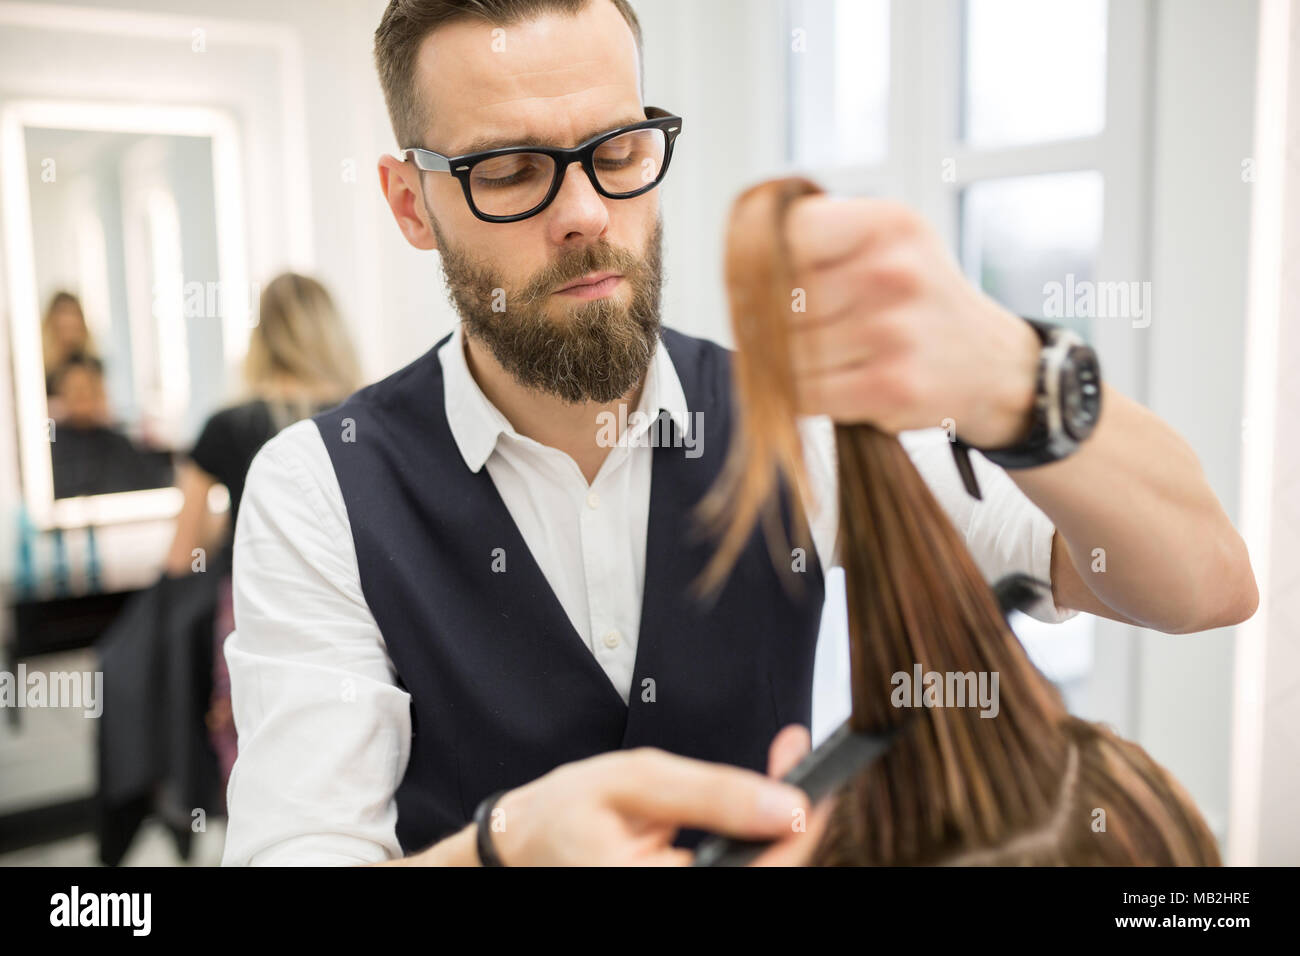 Portrait of focused hairdresser combing customer hair before haircut - Stock Image